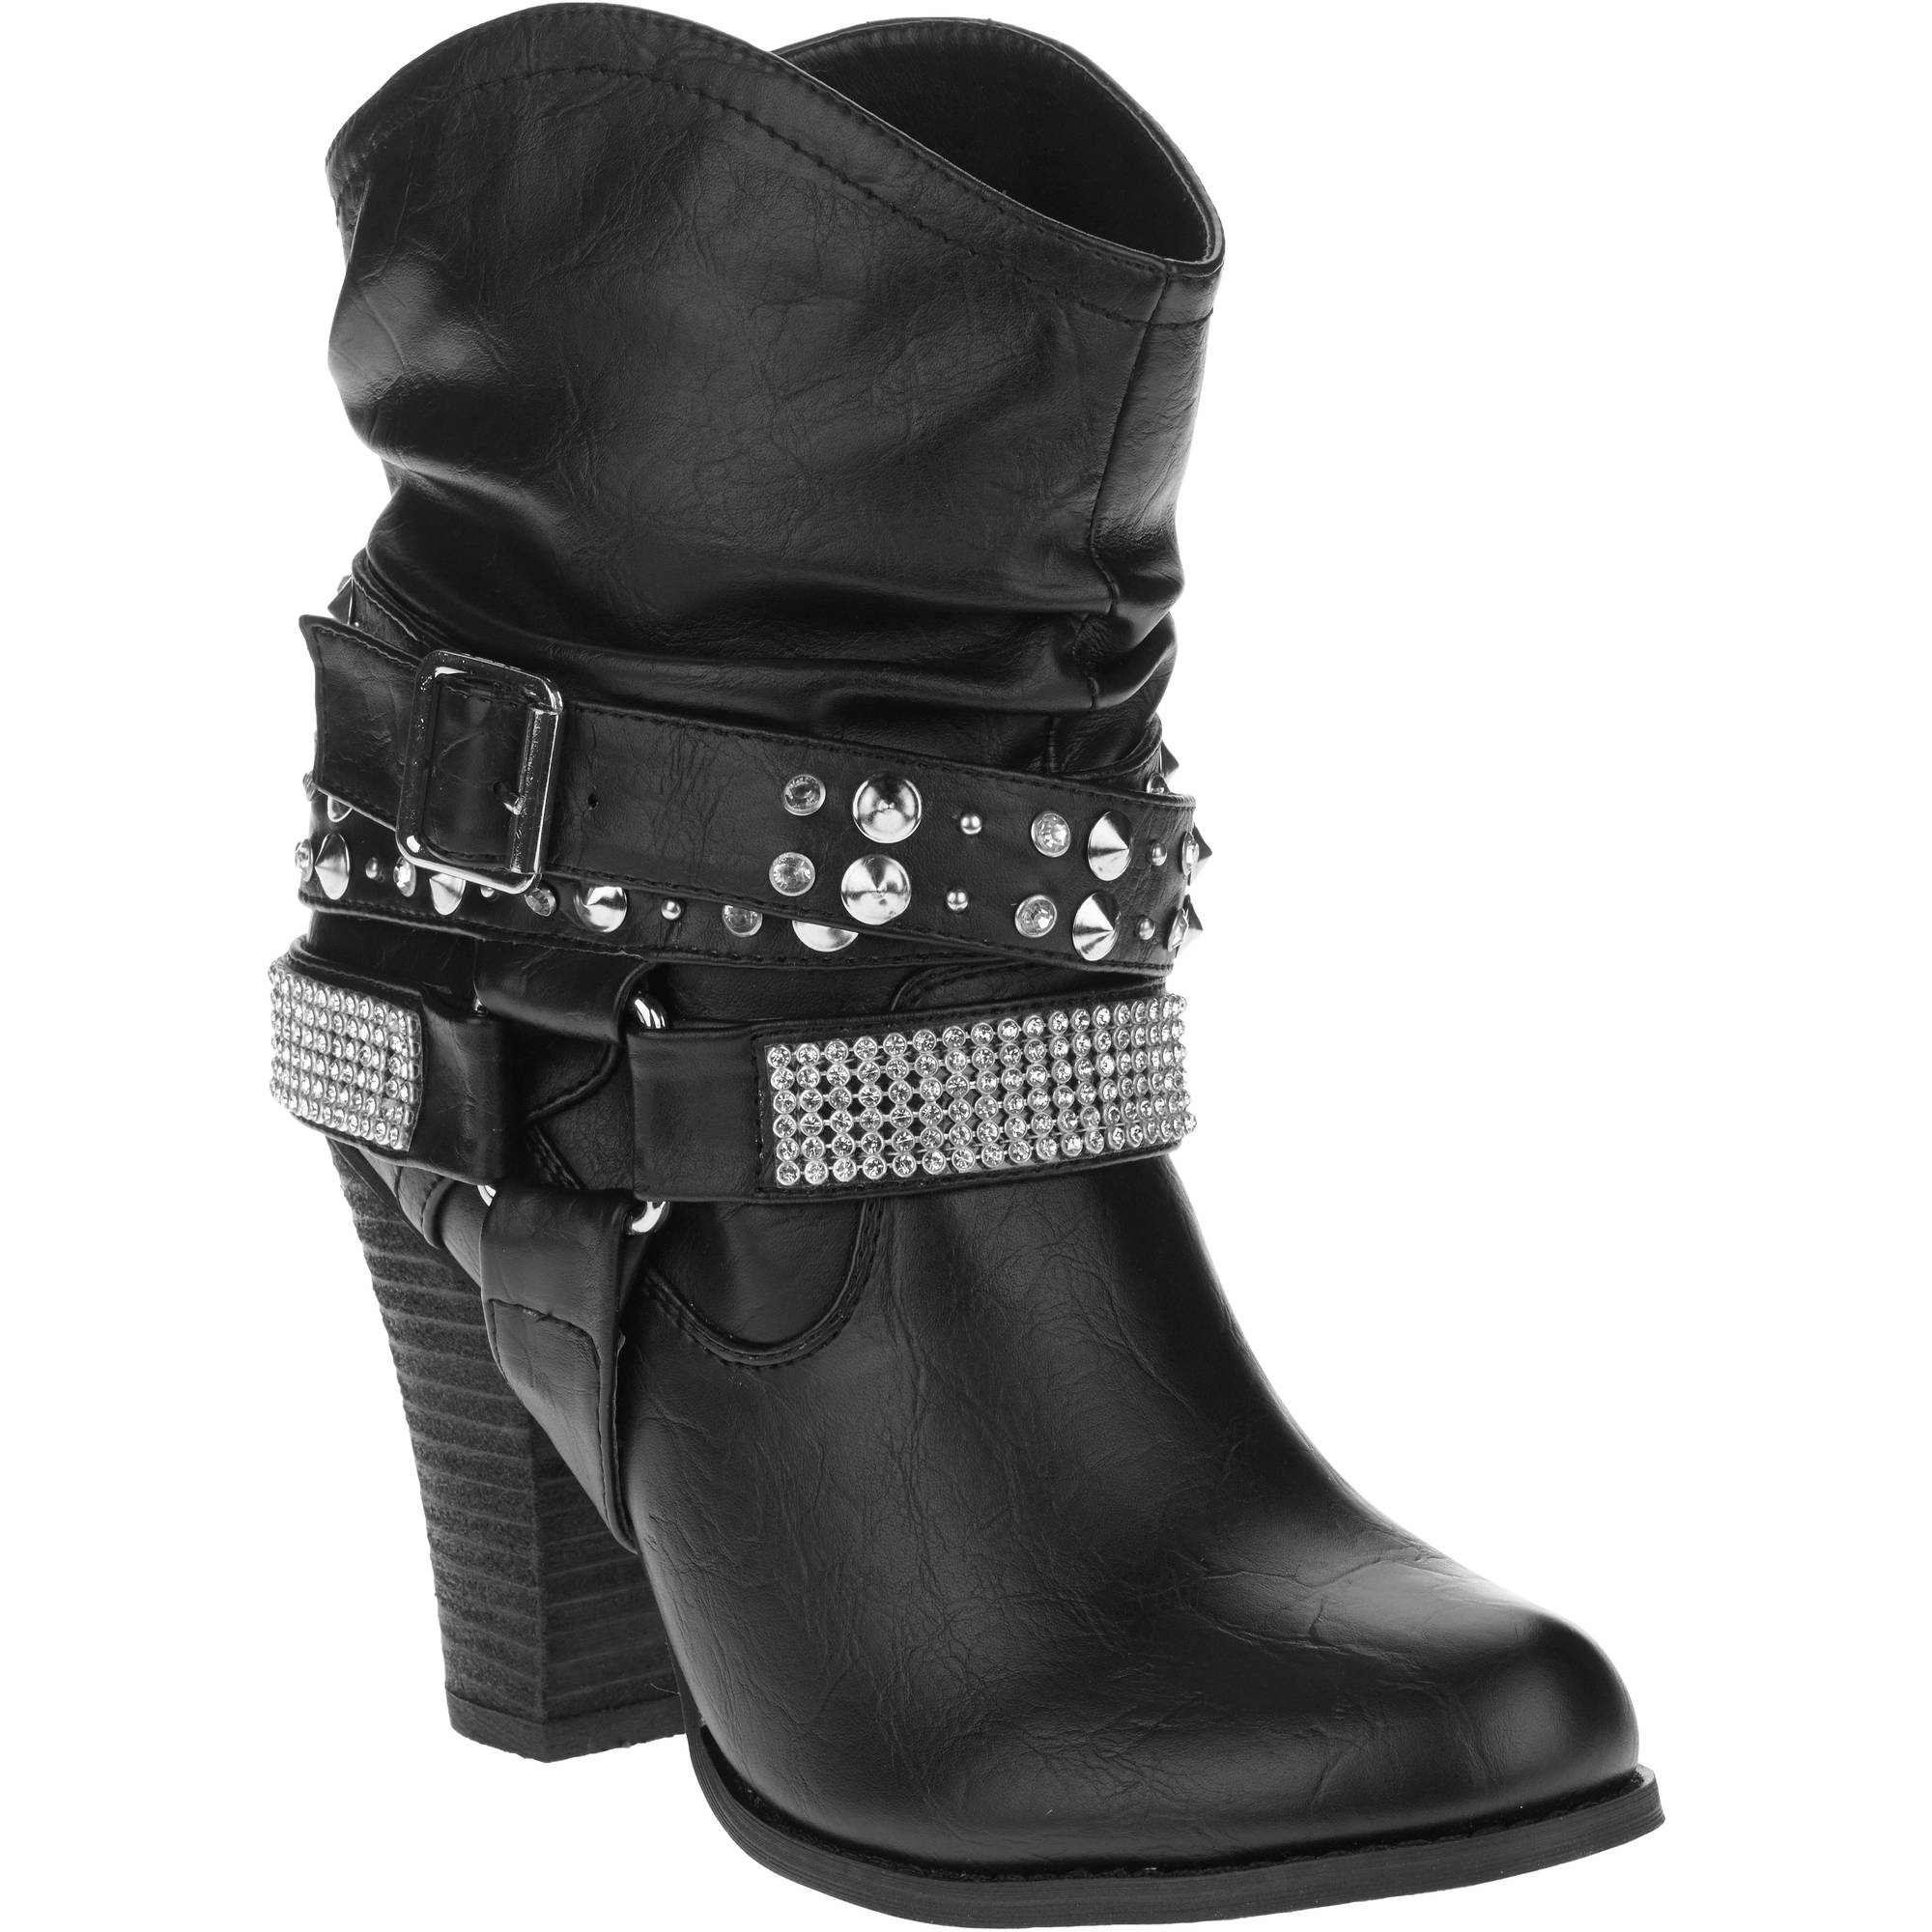 MOMO Women's High Heeled Bootie with Rhinestones and Studded Ankle Belt